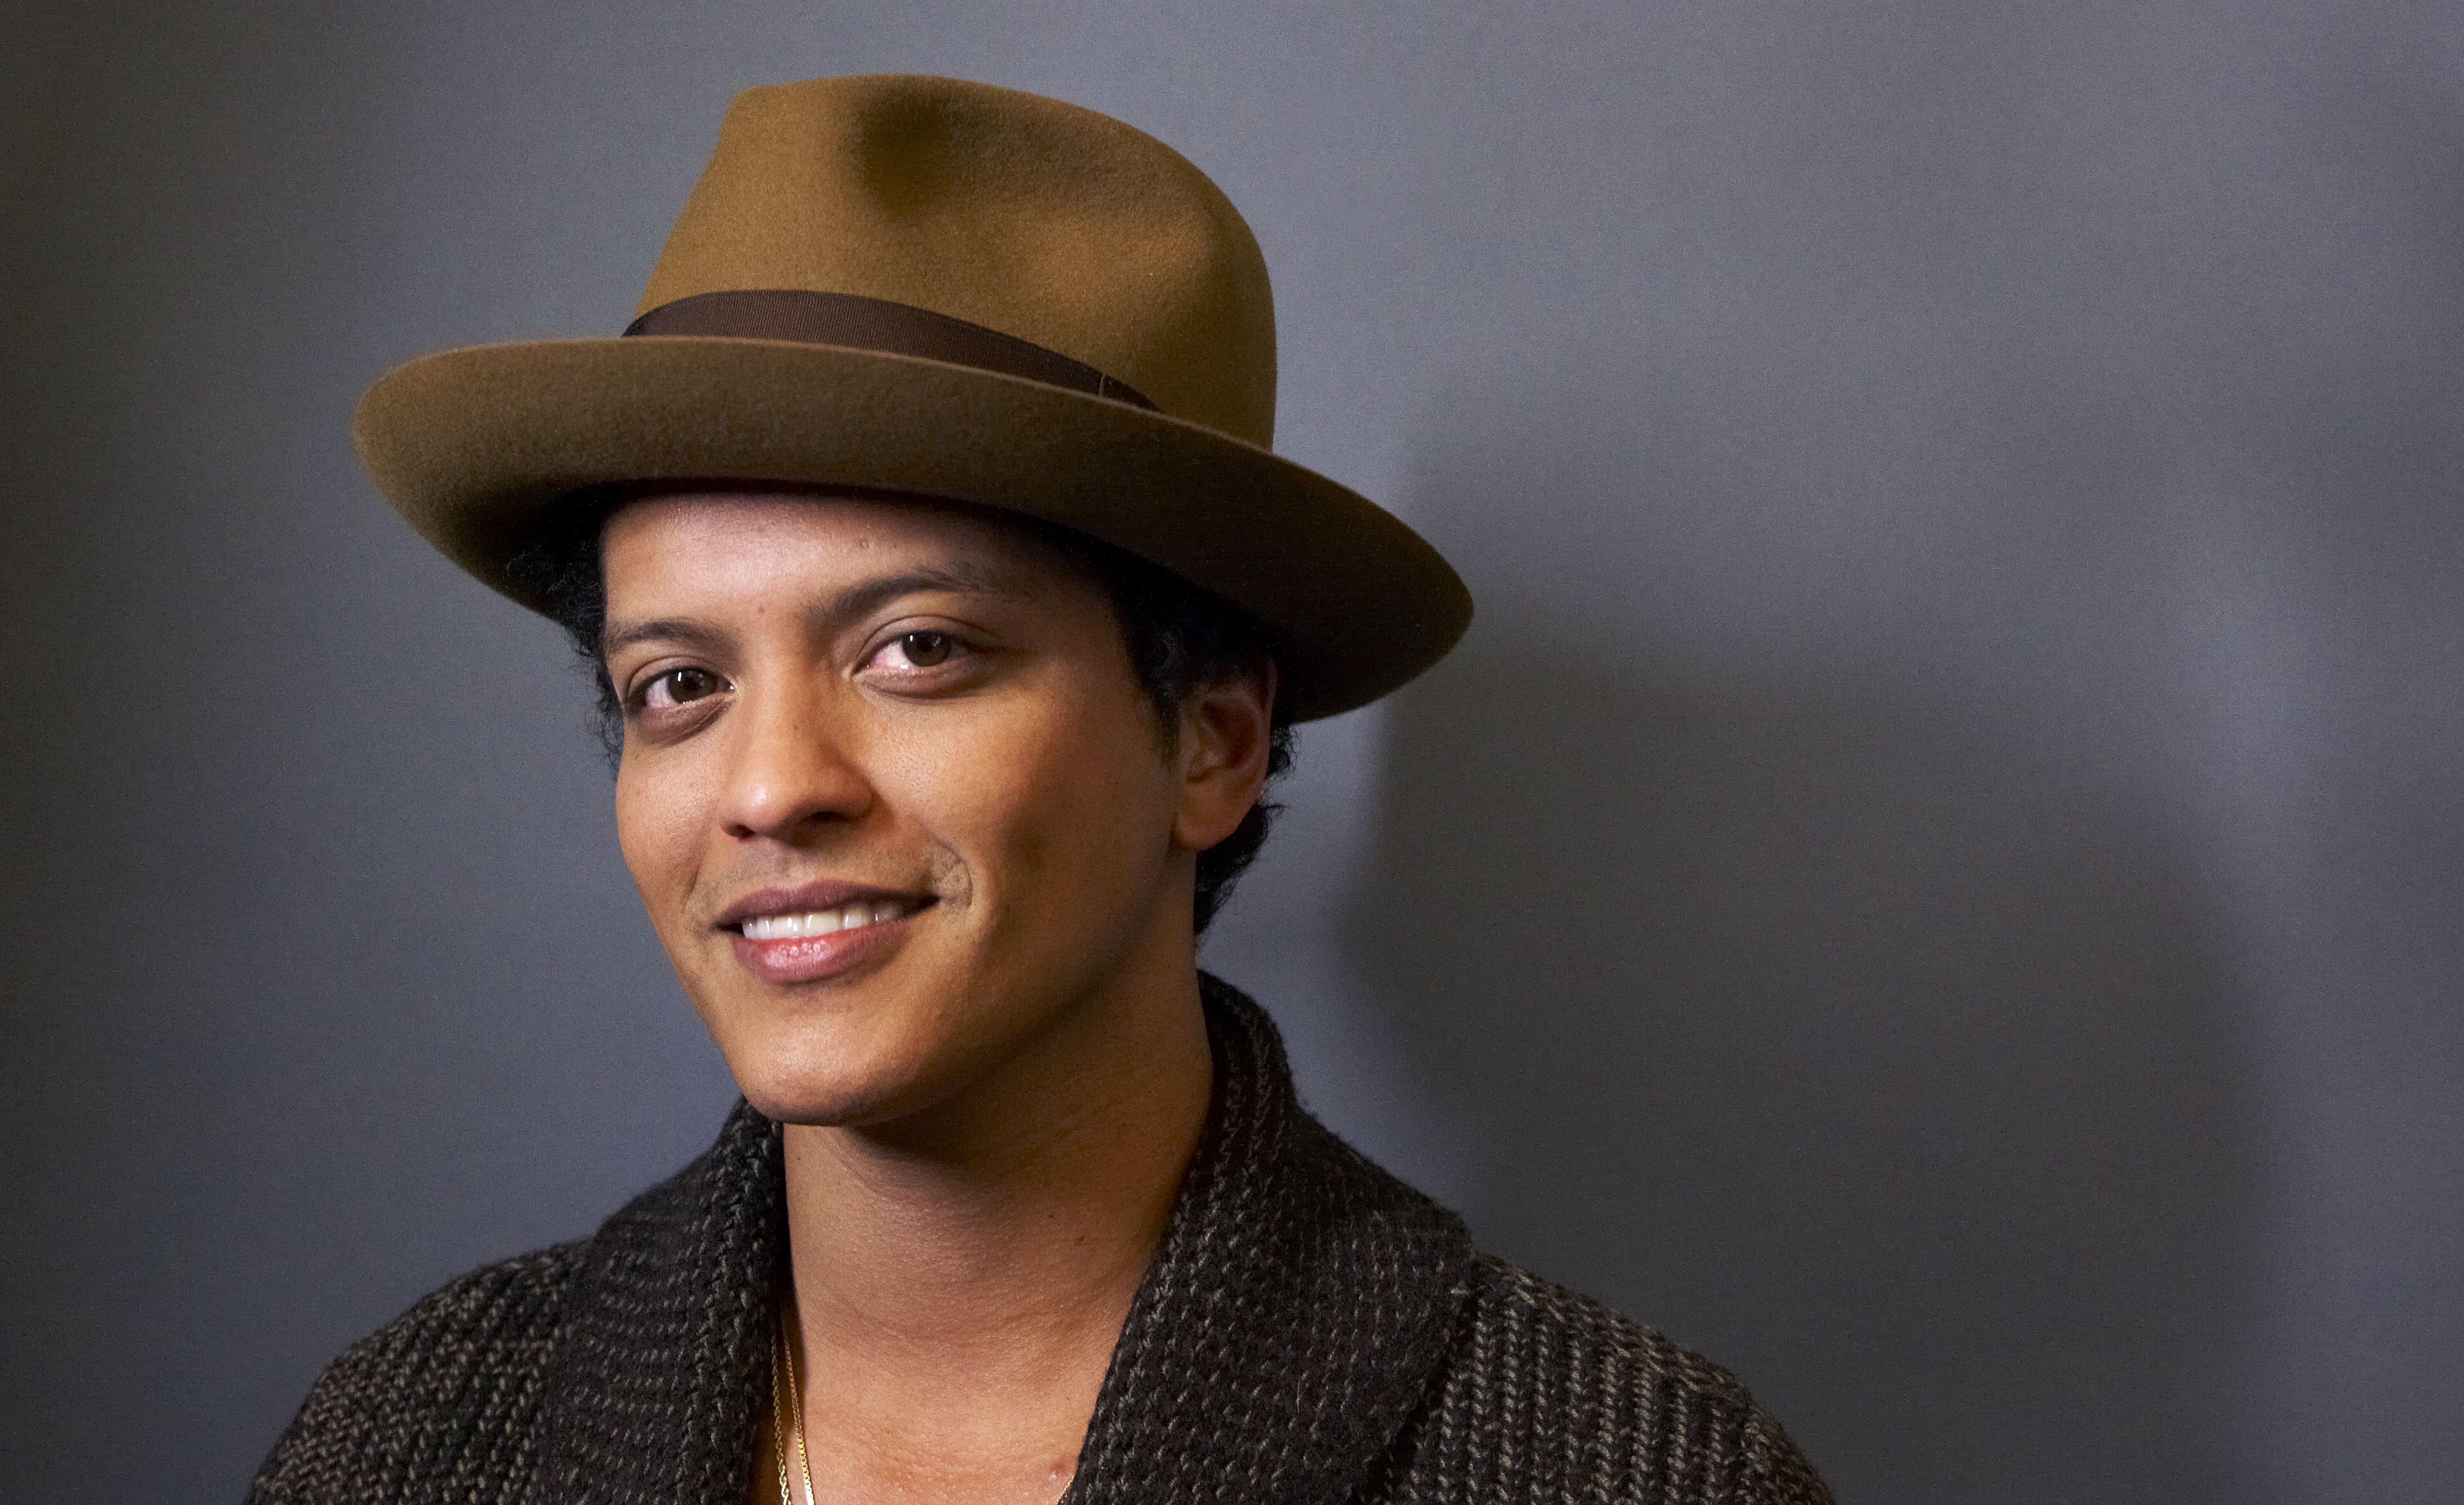 Bruno Mars 4k Ultra HD Wallpaper